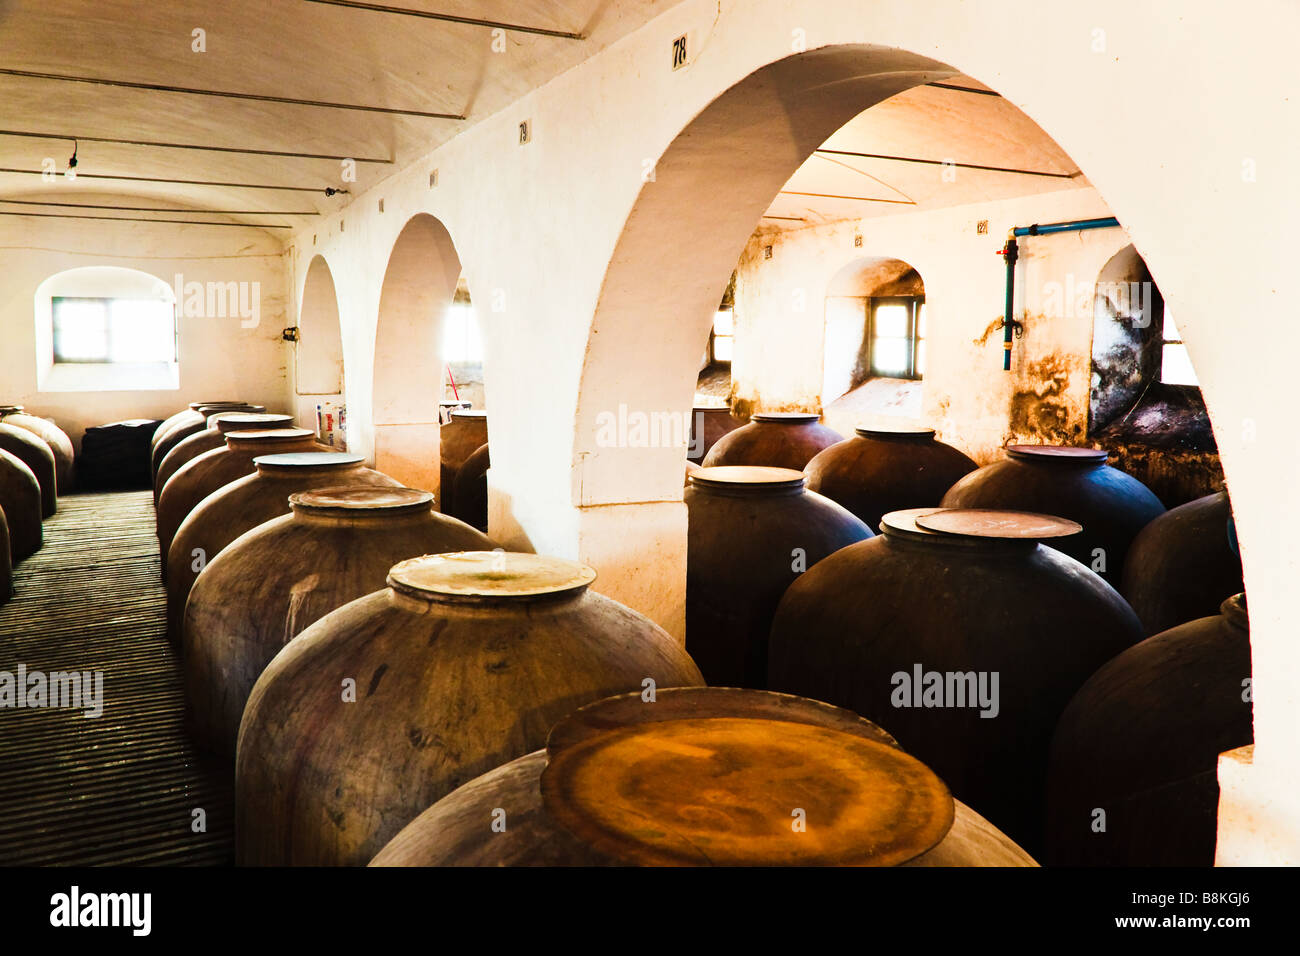 Montilla Cordoba Province Spain Interior Bodegas Navarro showing tinajas or earthenware jars in which wine ferments - Stock Image